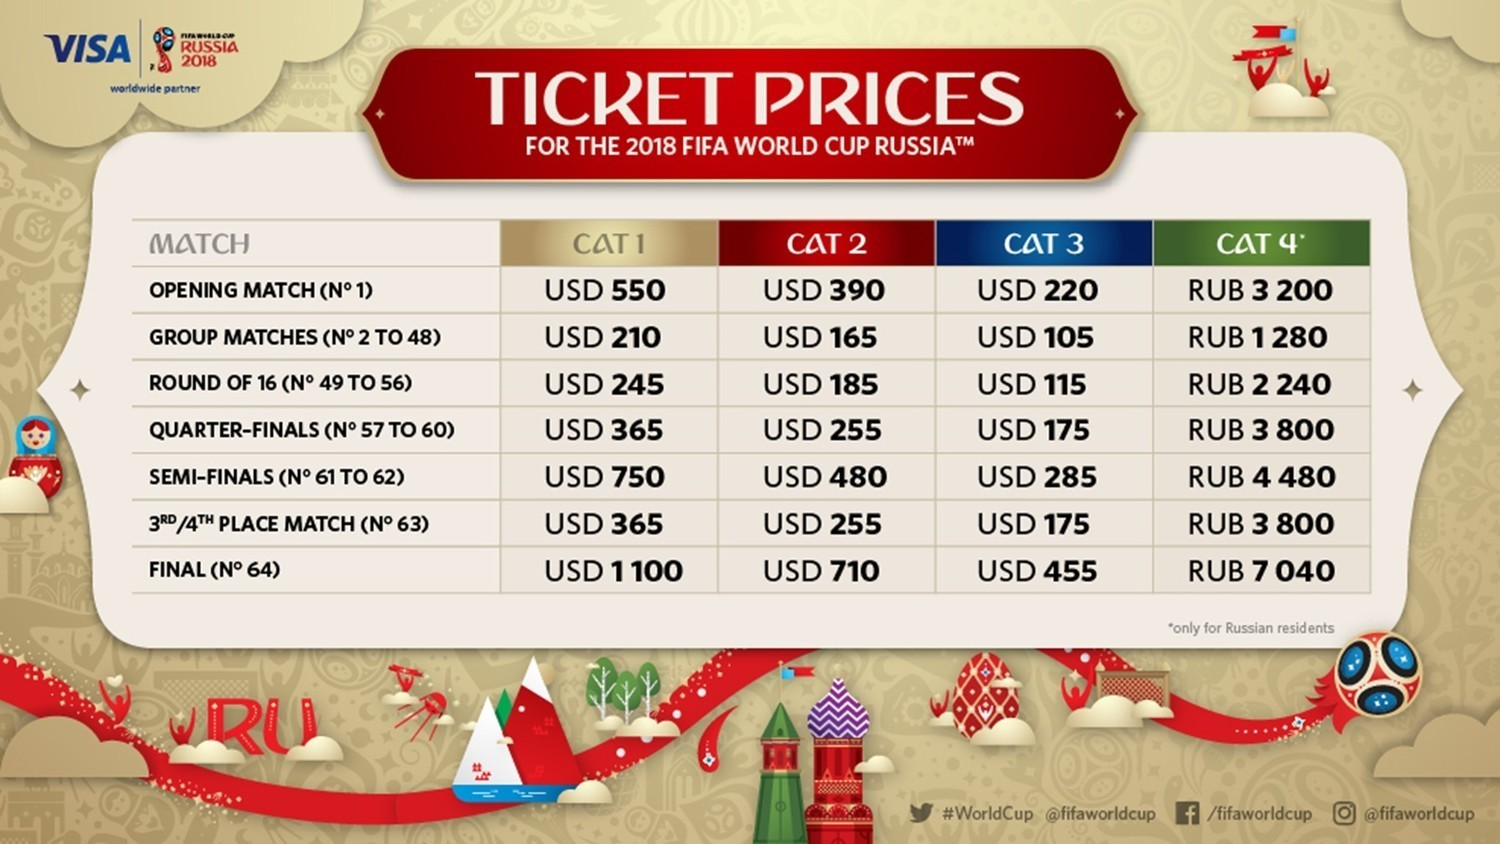 FIFA Ticket Prices